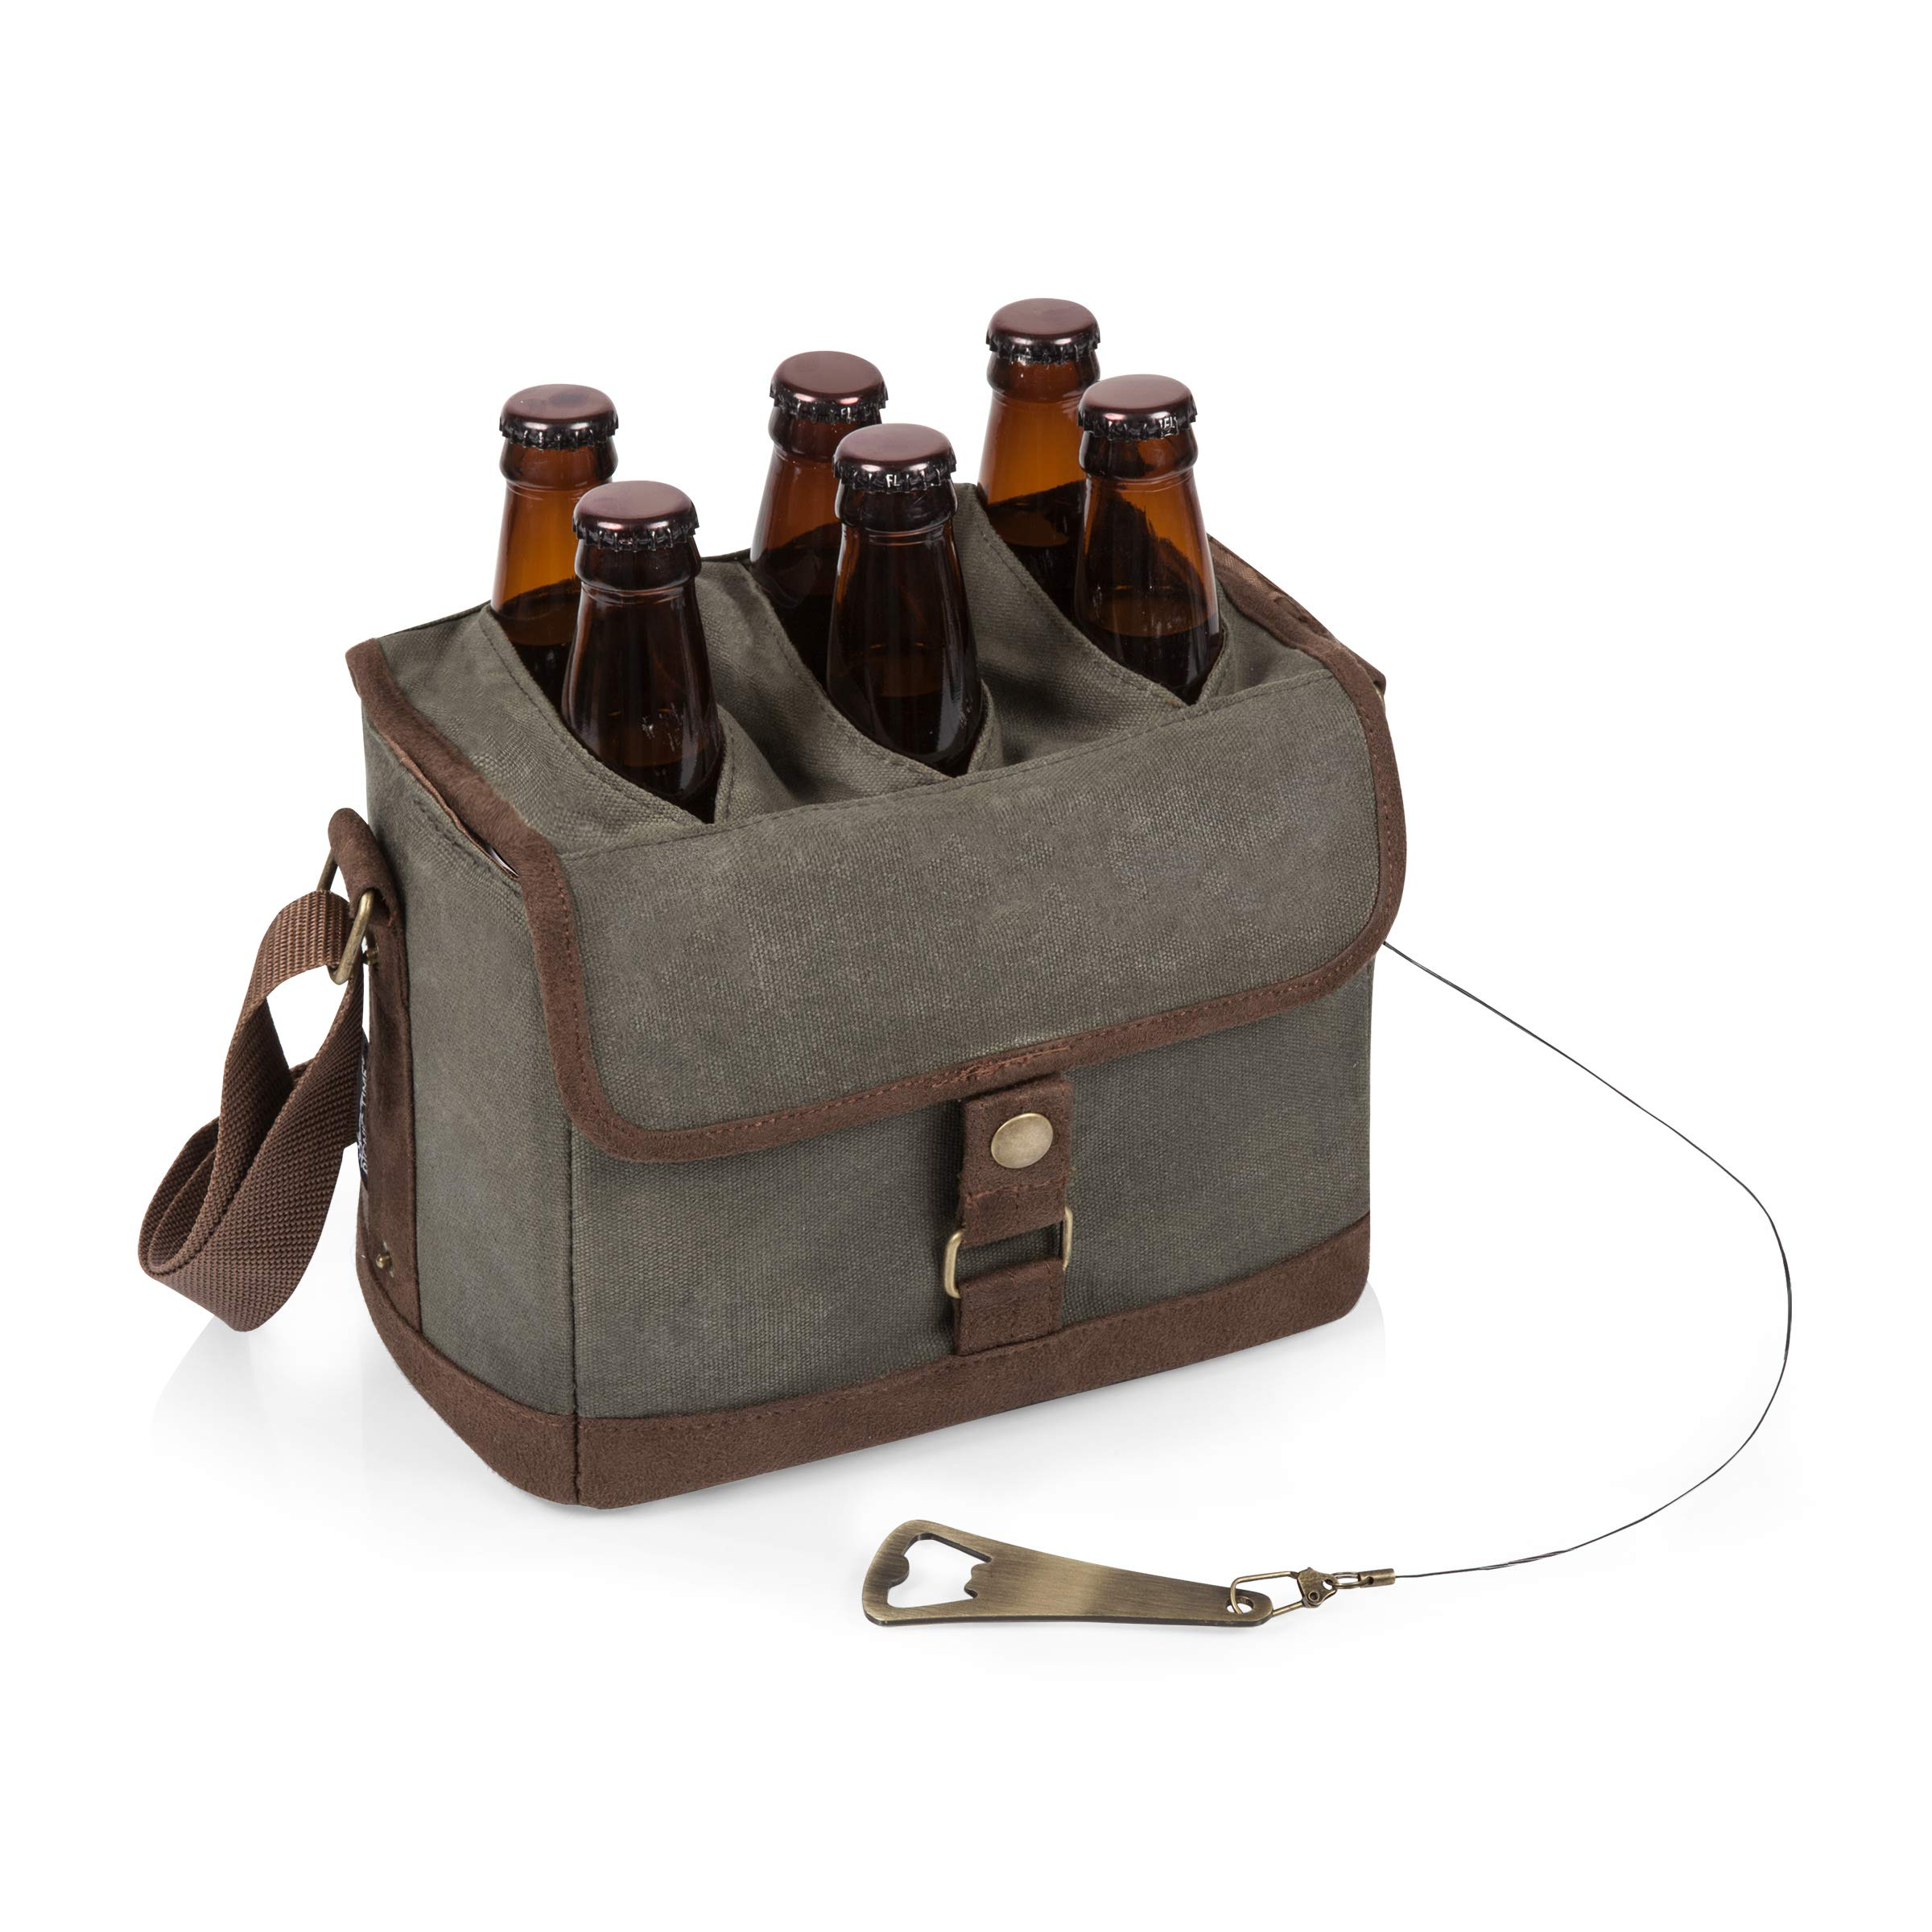 LEGACY - a Picnic Time Brand 6-Bottle Beer Caddy with Integrated Bottle Opener, Khaki Green/Brown by LEGACY - a Picnic Time Brand (Image #1)